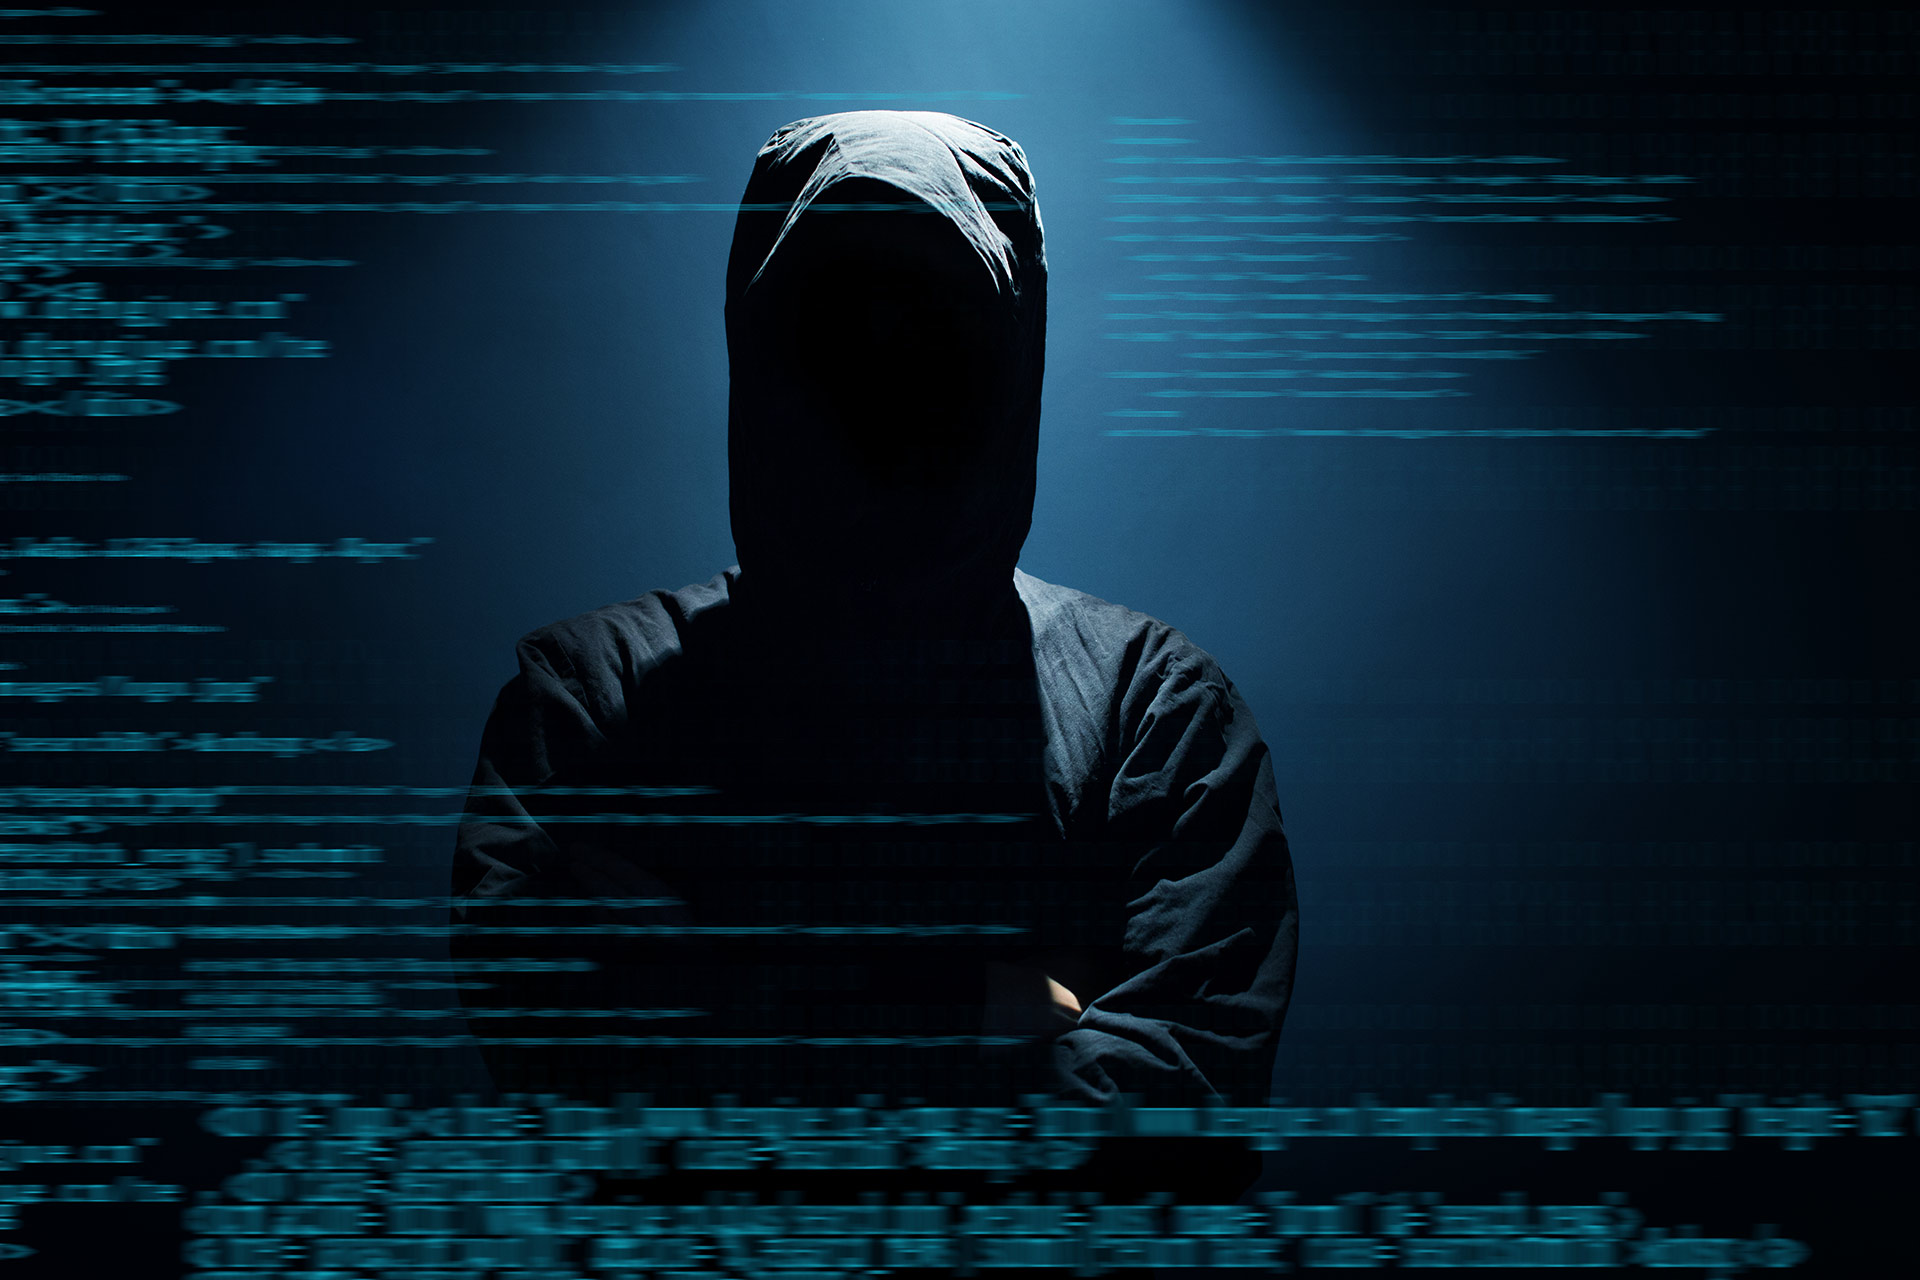 Why do hackers always wear hoodies?